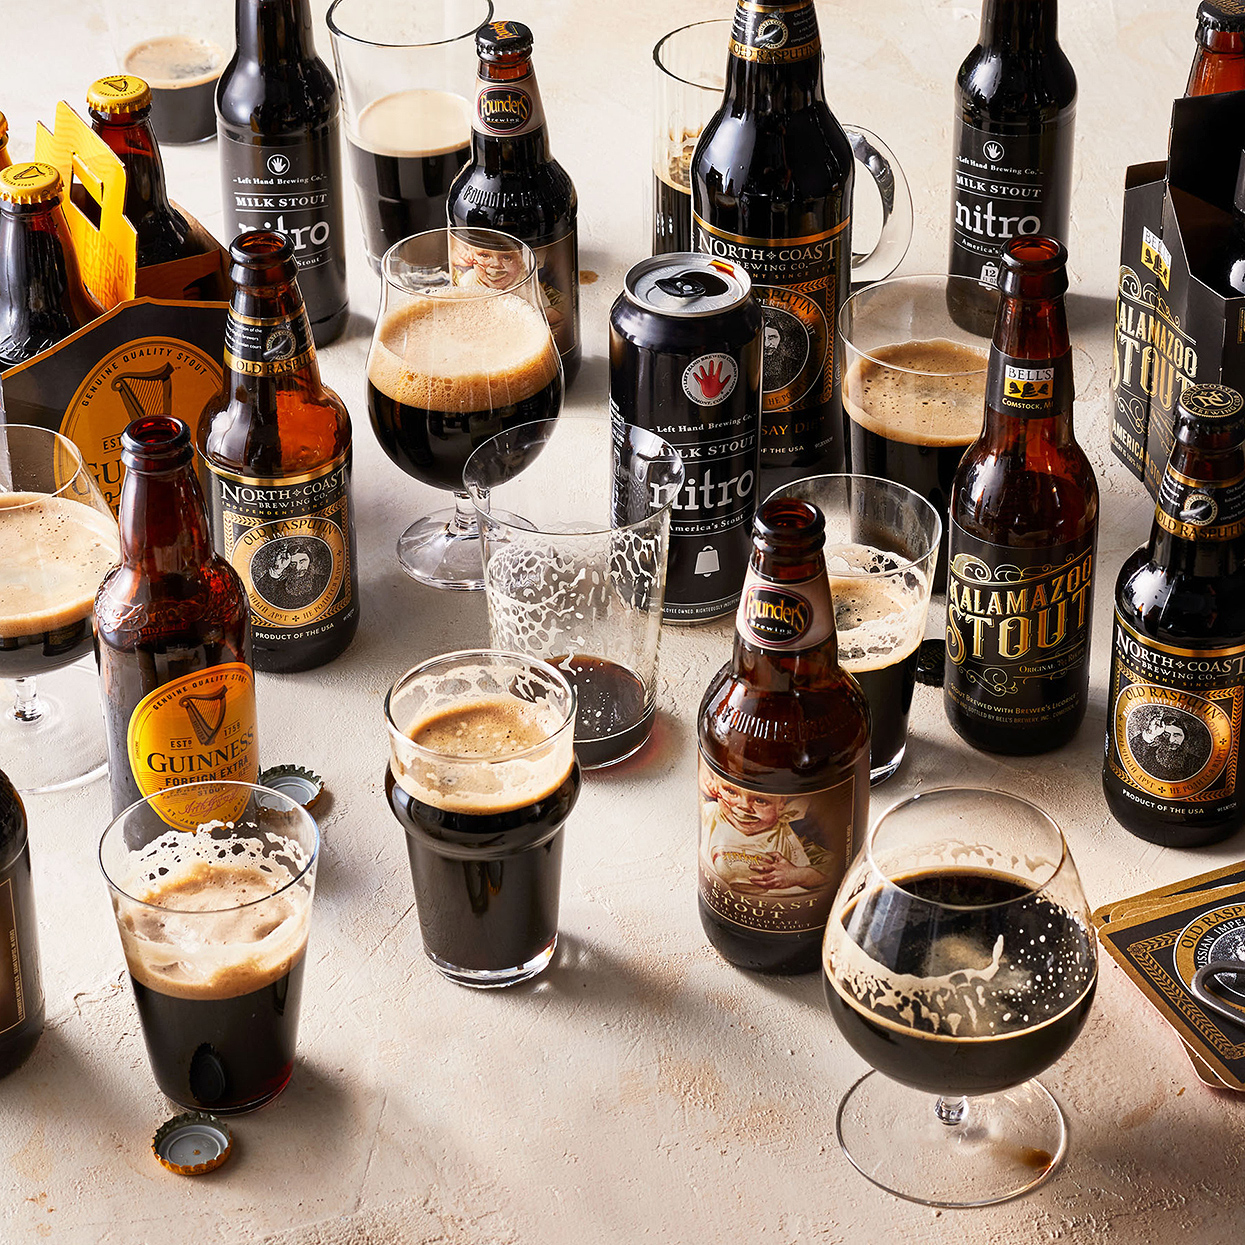 variety of stout bottles and cans among glasses